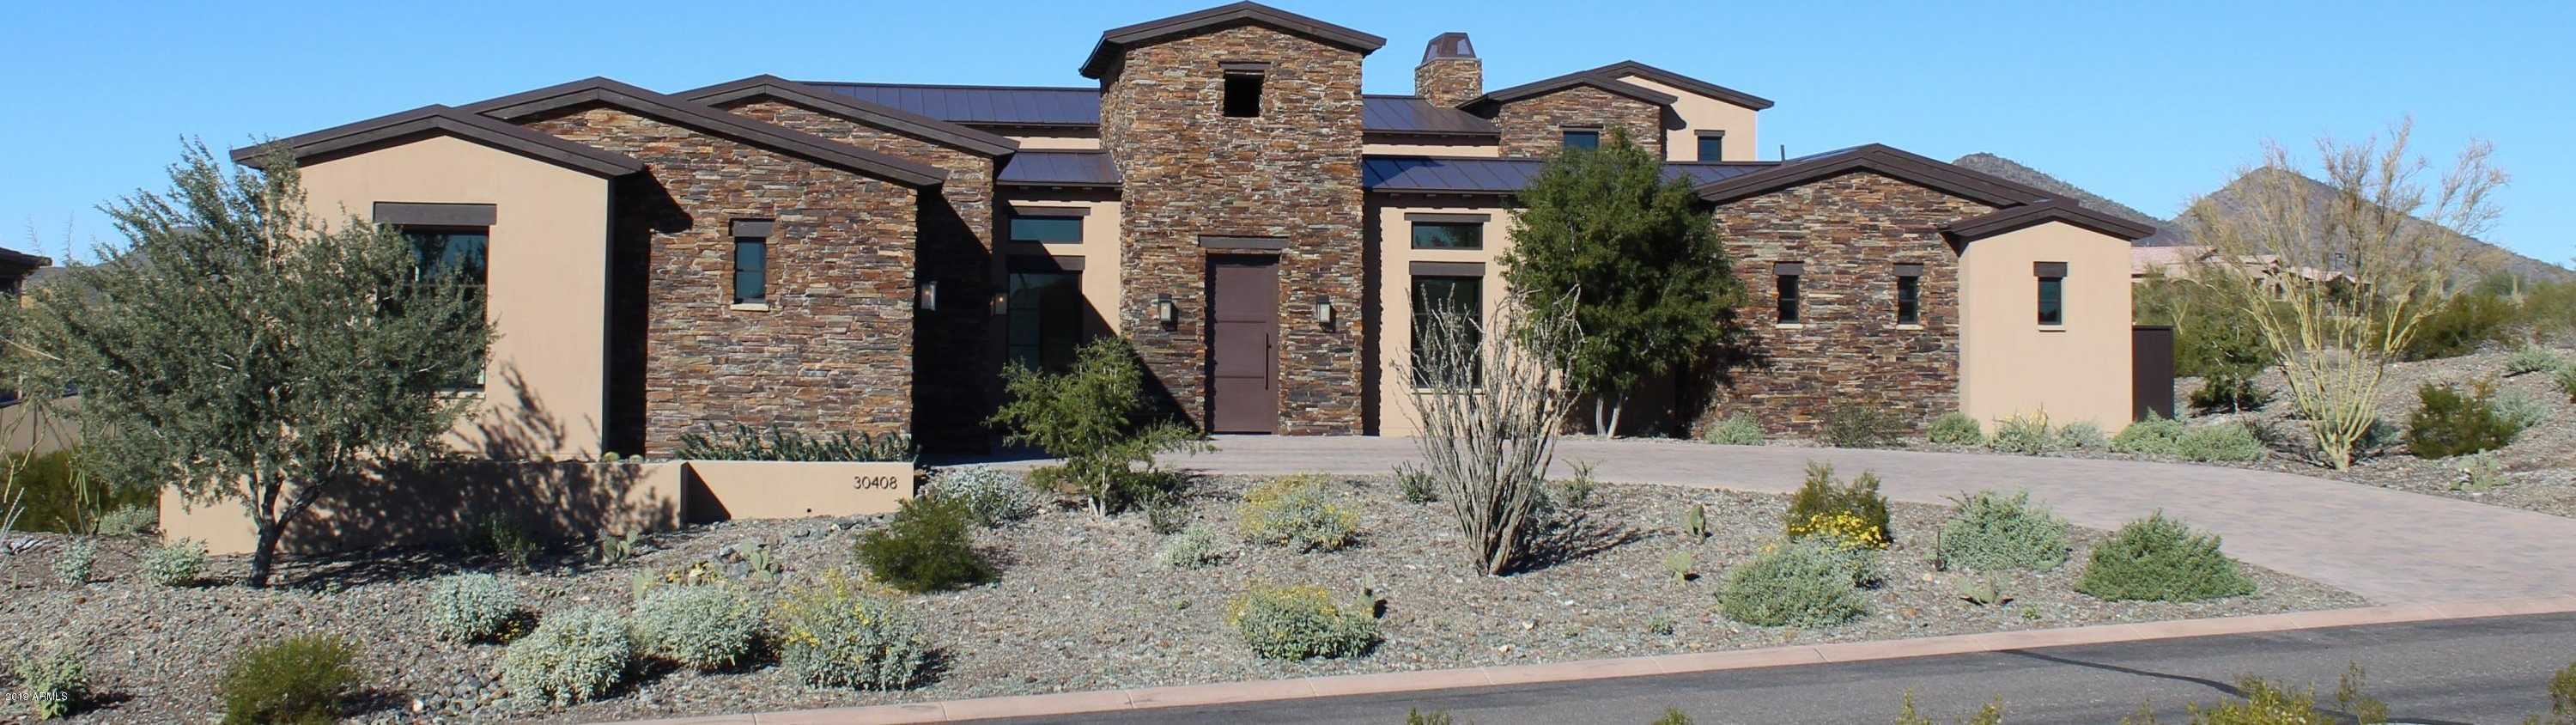 $2,039,500 - 4Br/5Ba - Home for Sale in Blackstone At Vistancia Parcel B7, Peoria